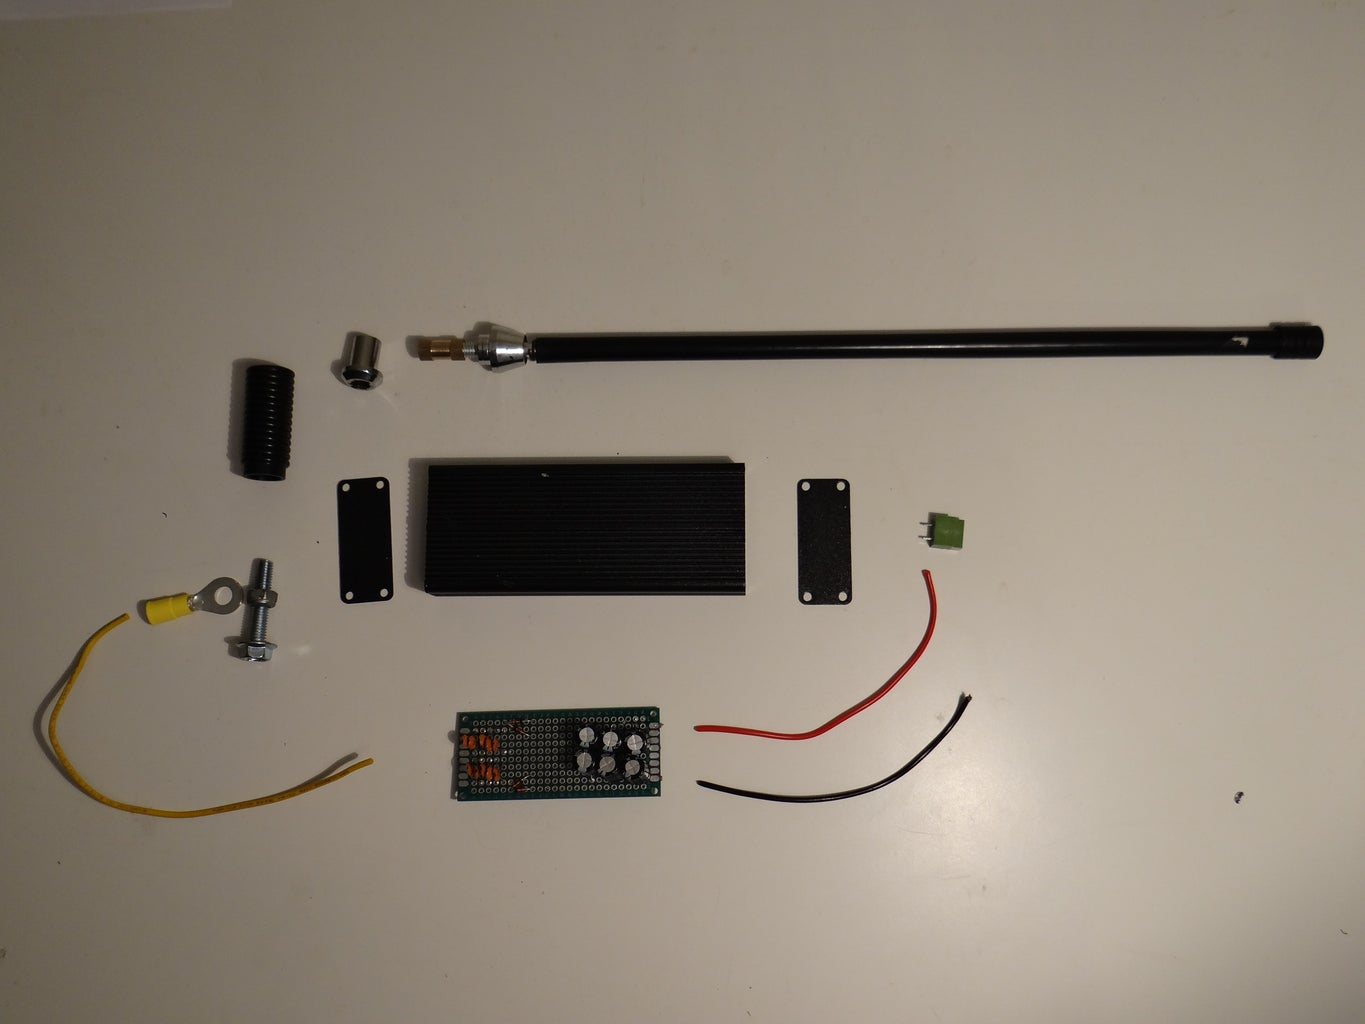 Add a Case and Antenna